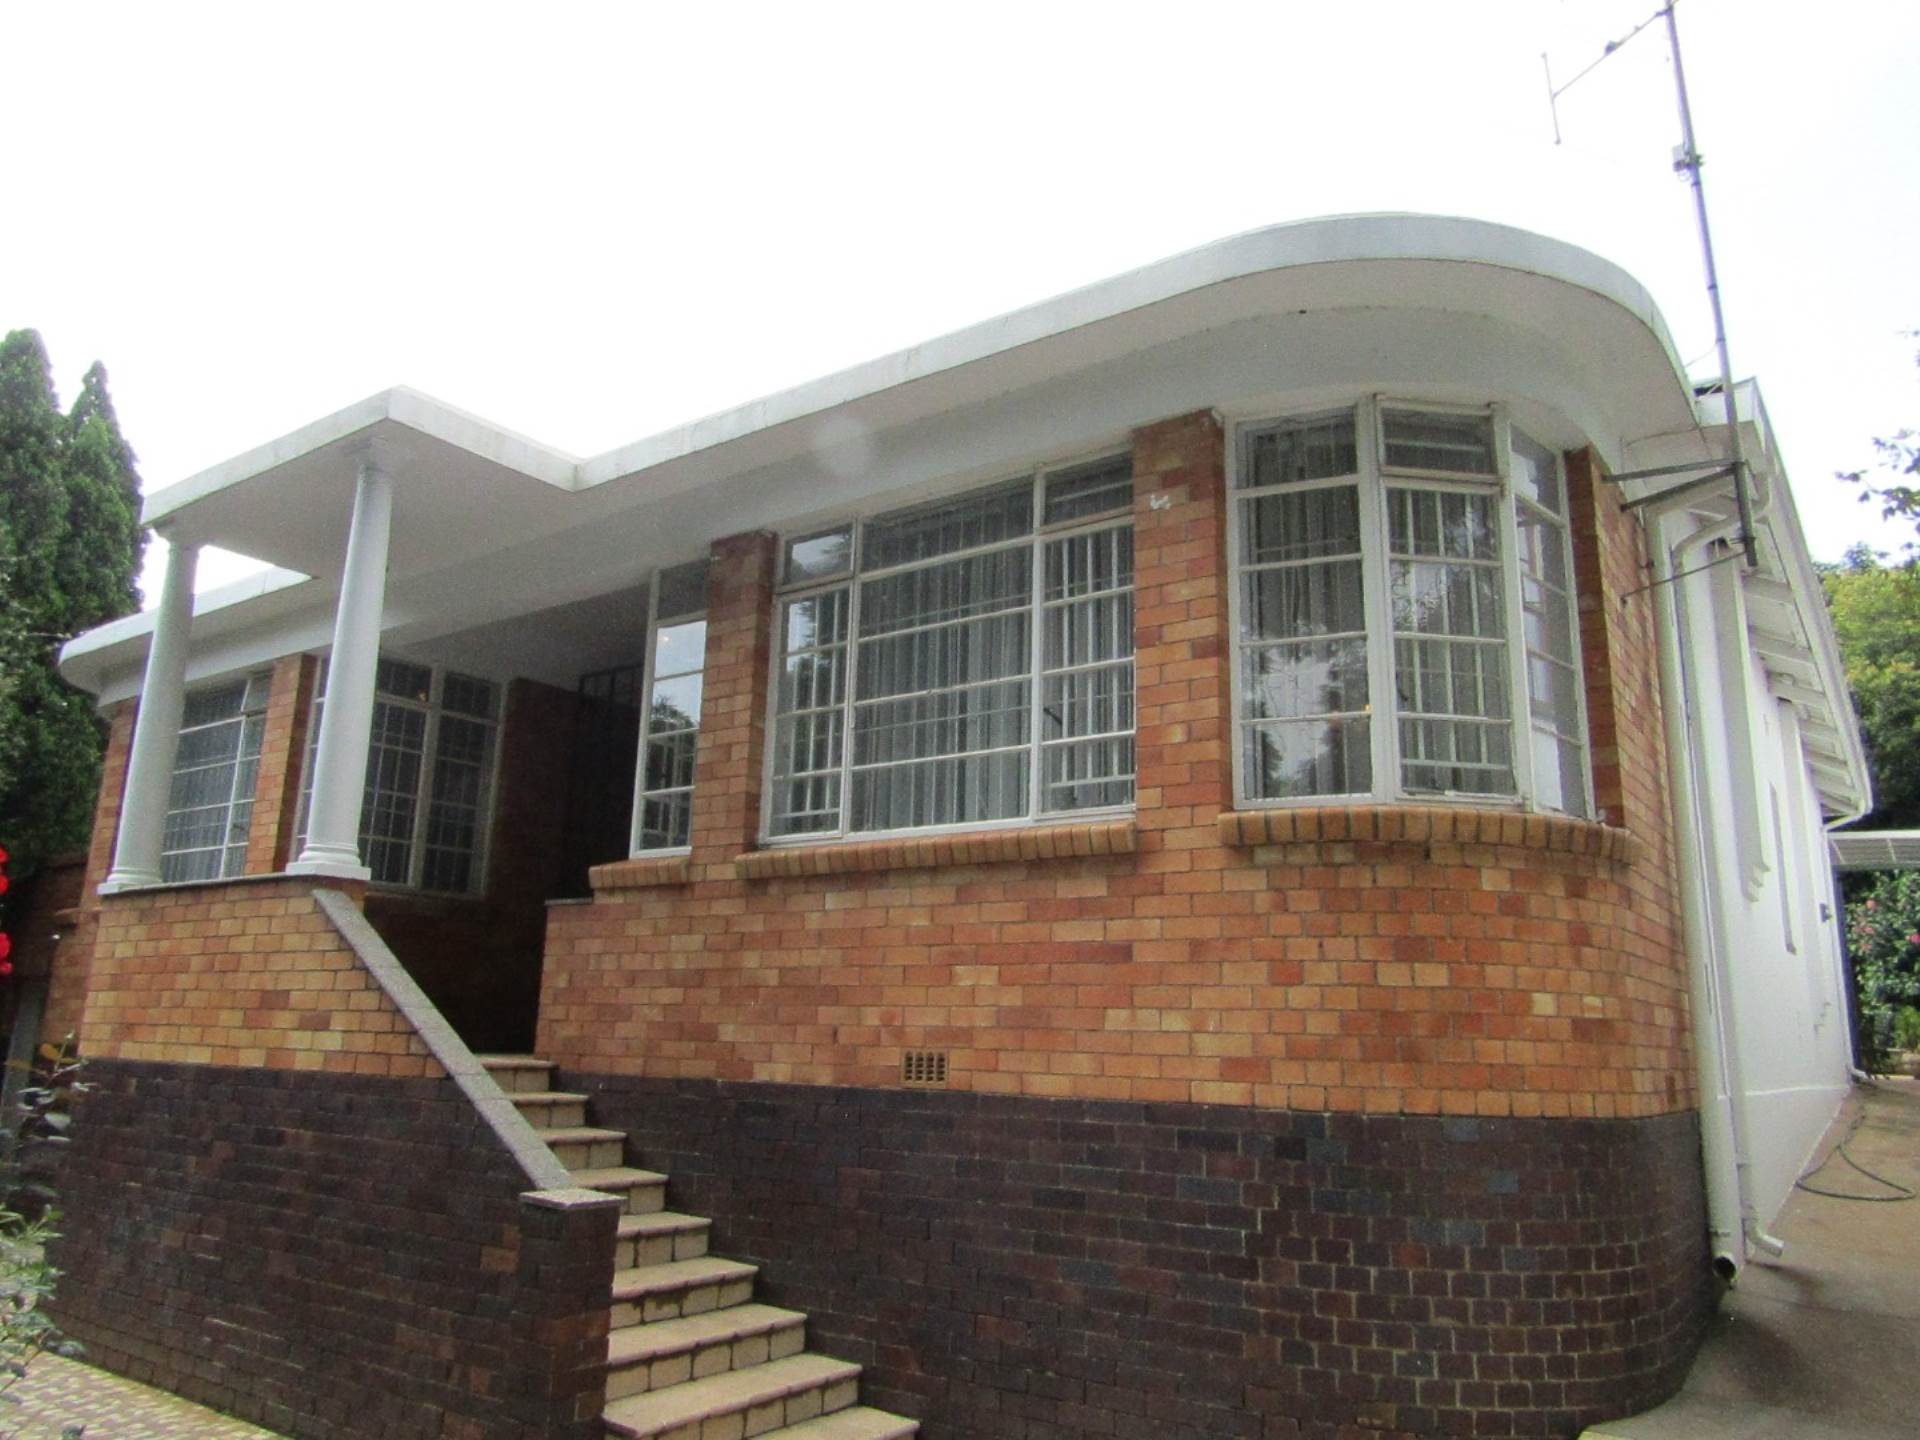 4 BedroomHouse For Sale In Kensington